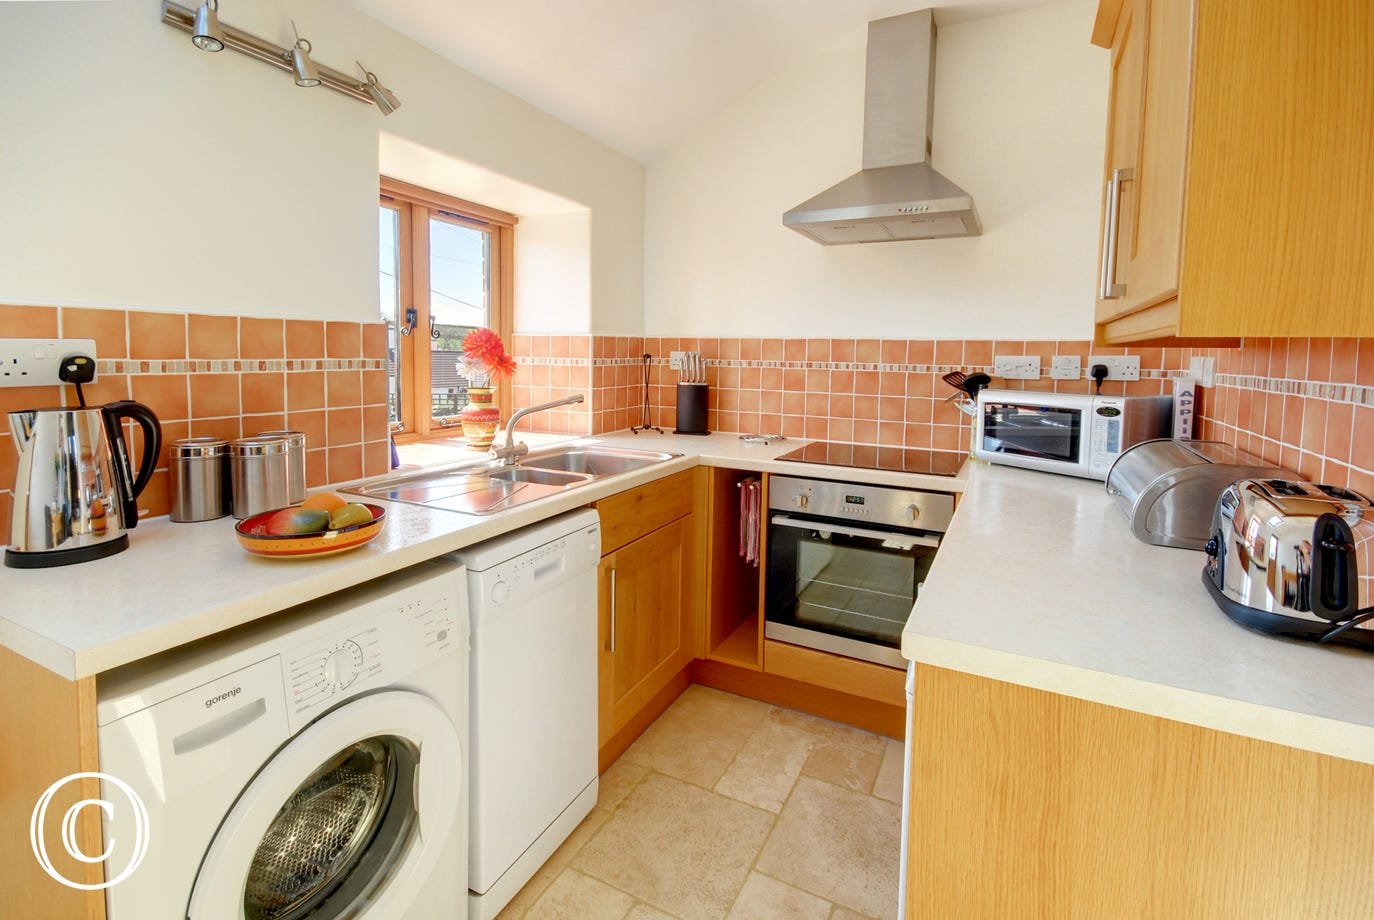 Kitchen with electric oven and hob, microwave, fridge, dishwasher and washing machine